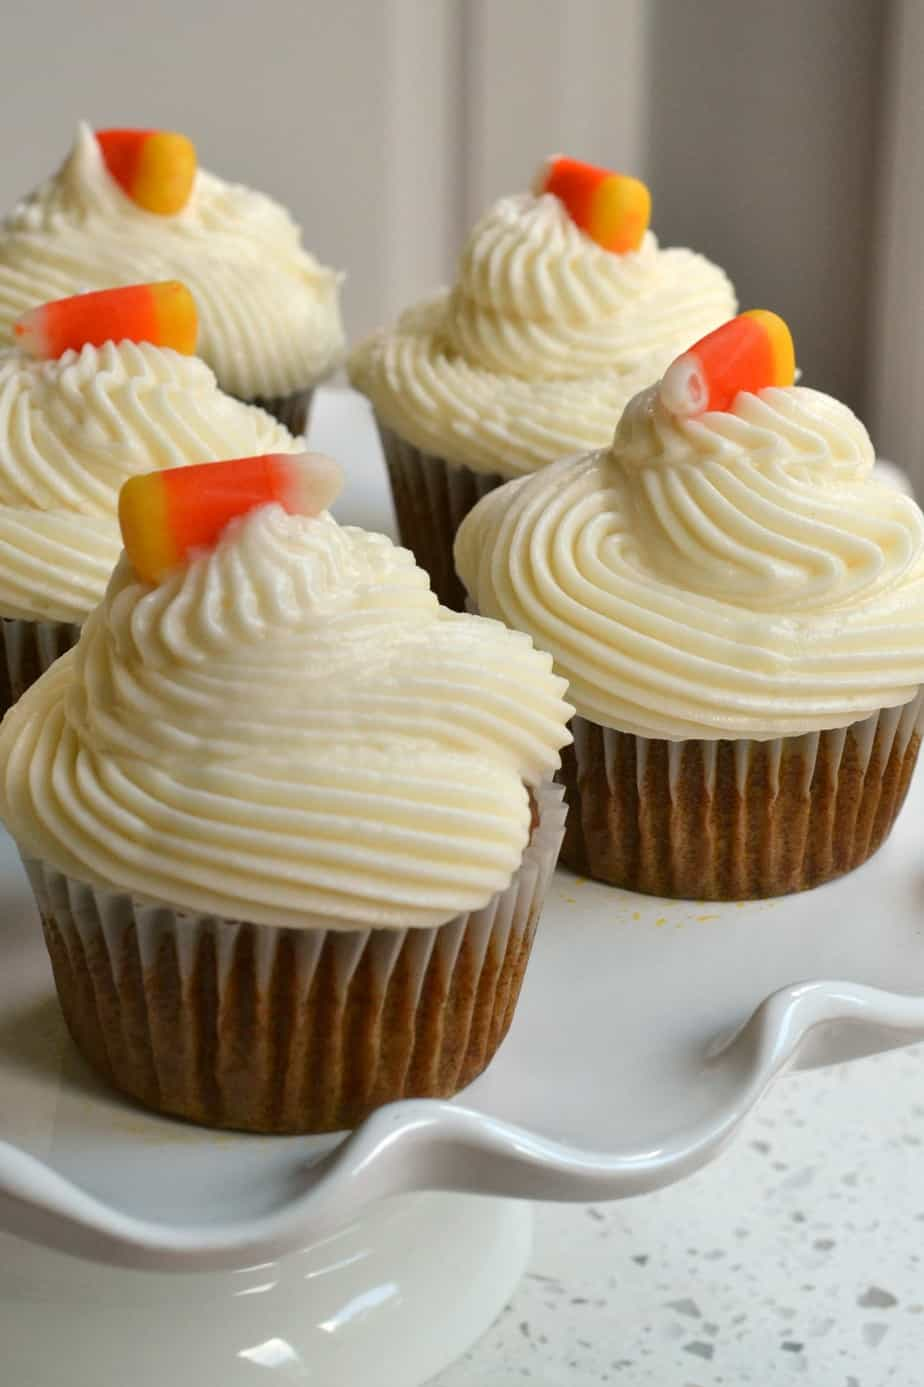 These adorable moist cinnamon pumpkin cupcakes are topped with an easy four ingredient cream cheese frosting.